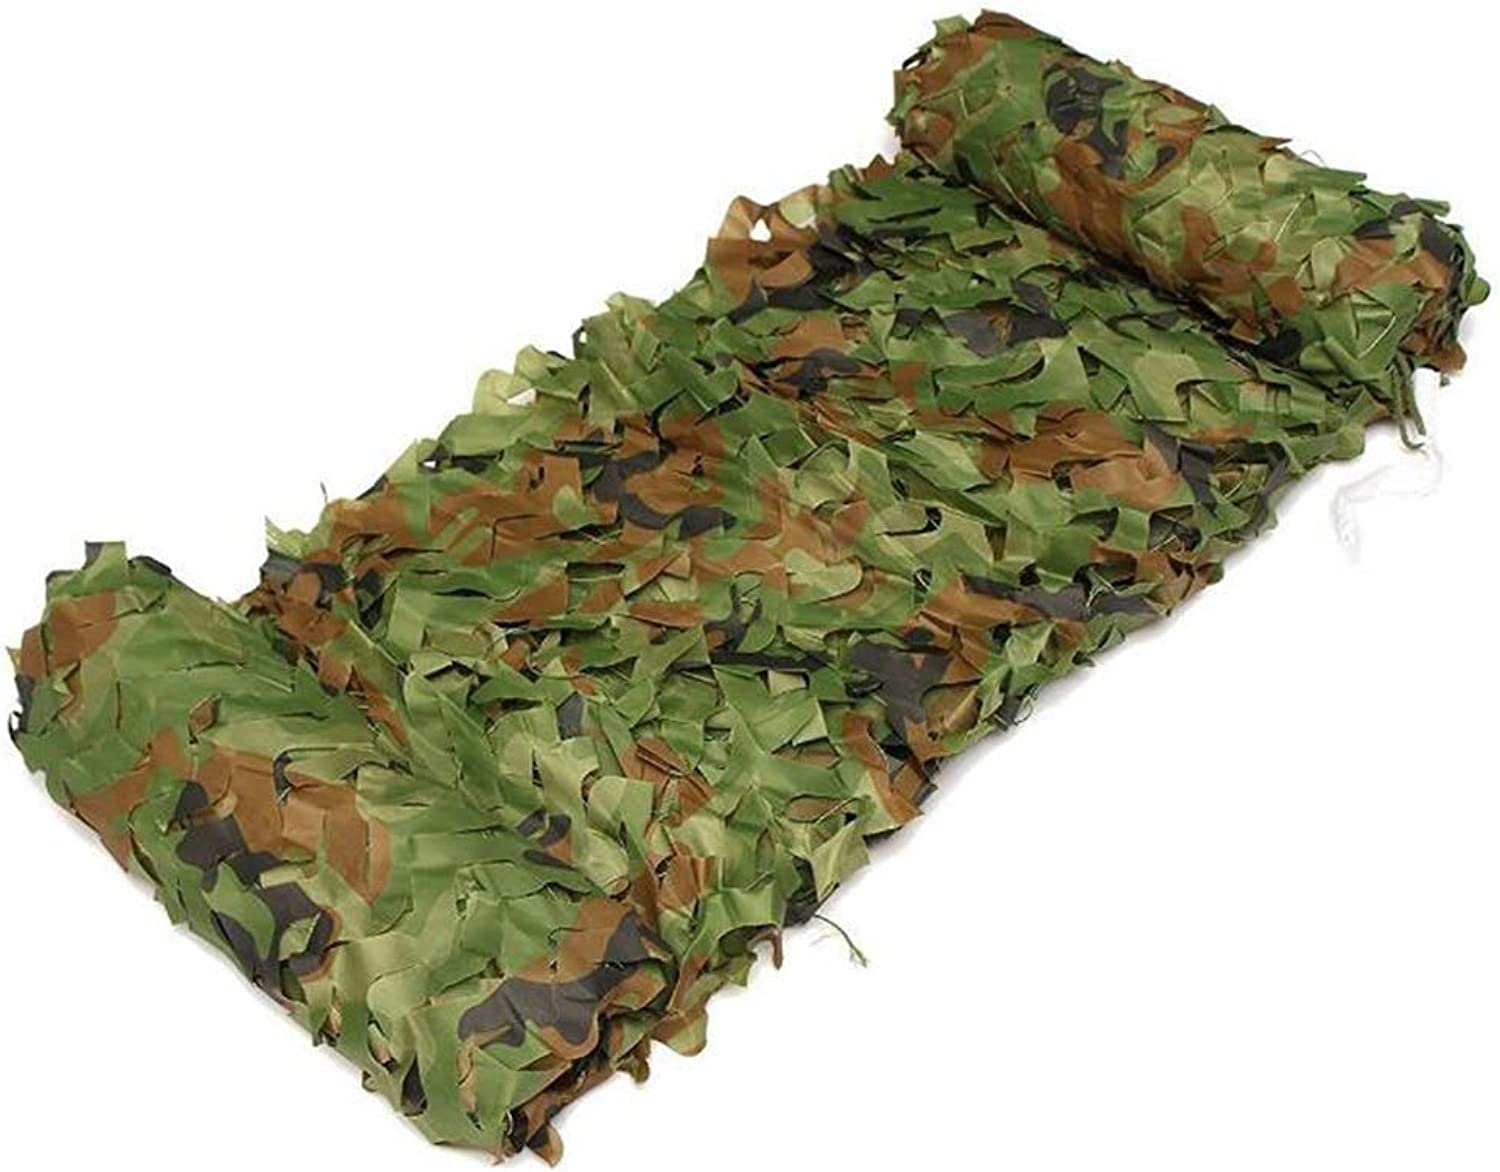 YNFNGXU Camouflage Net 2M X 3M Camouflage Cover for Camping Hidden Army Net (Size   3x6m)